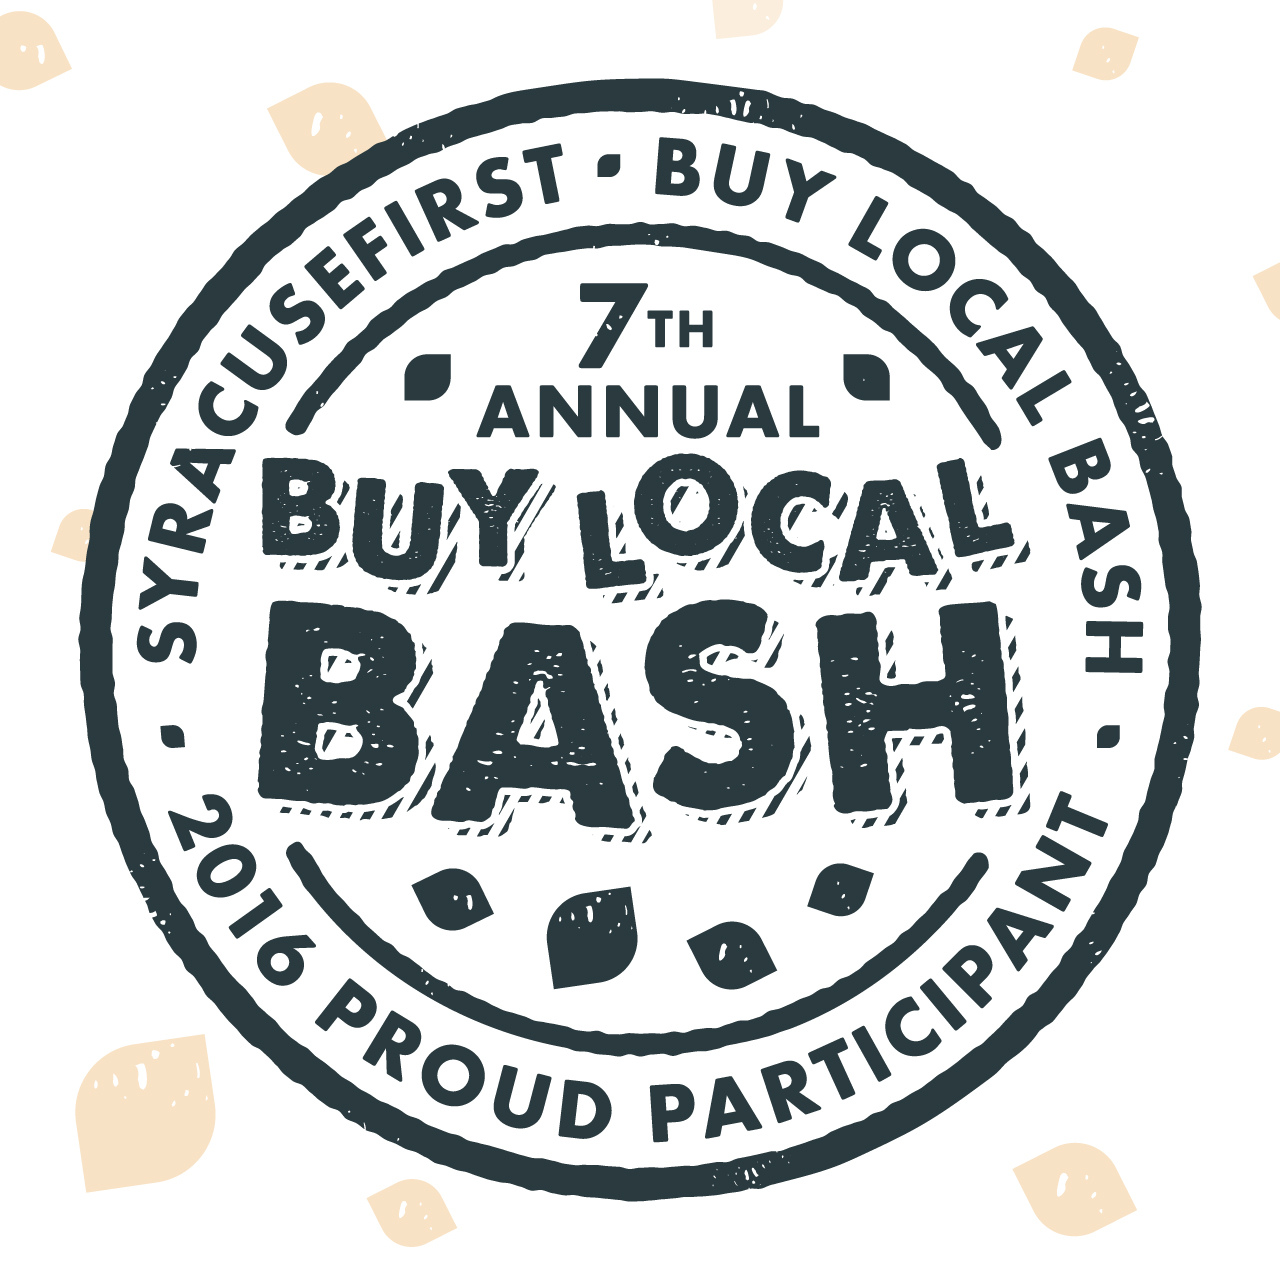 Syracuse Buy Local Bash on November 21, 2016 5:00 pm - 9:00 pm at the Regional Market